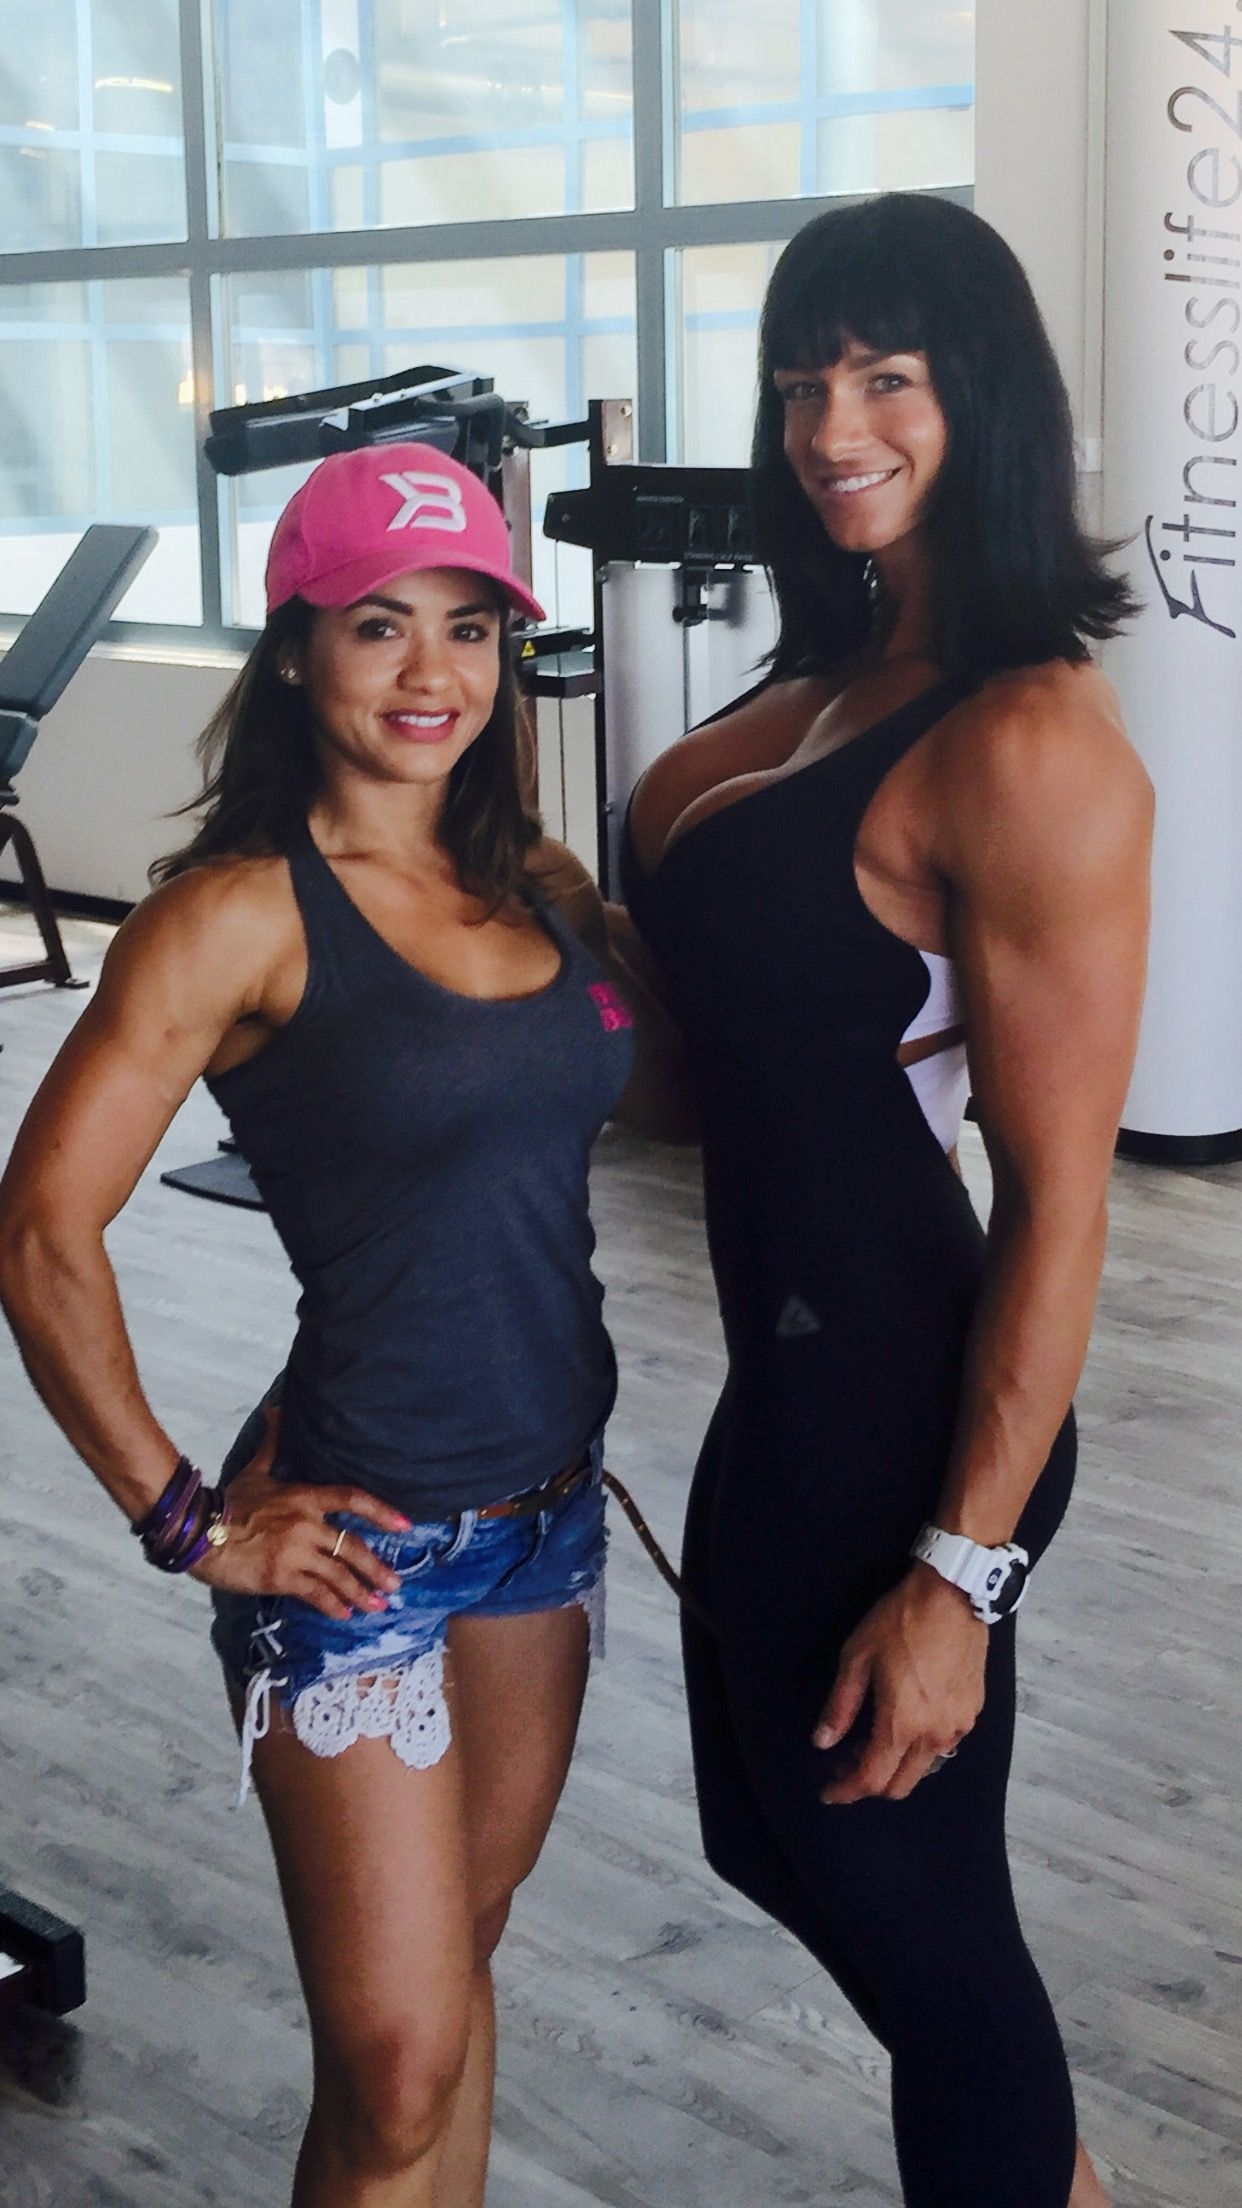 With Nucia looking forward to seeing and training with